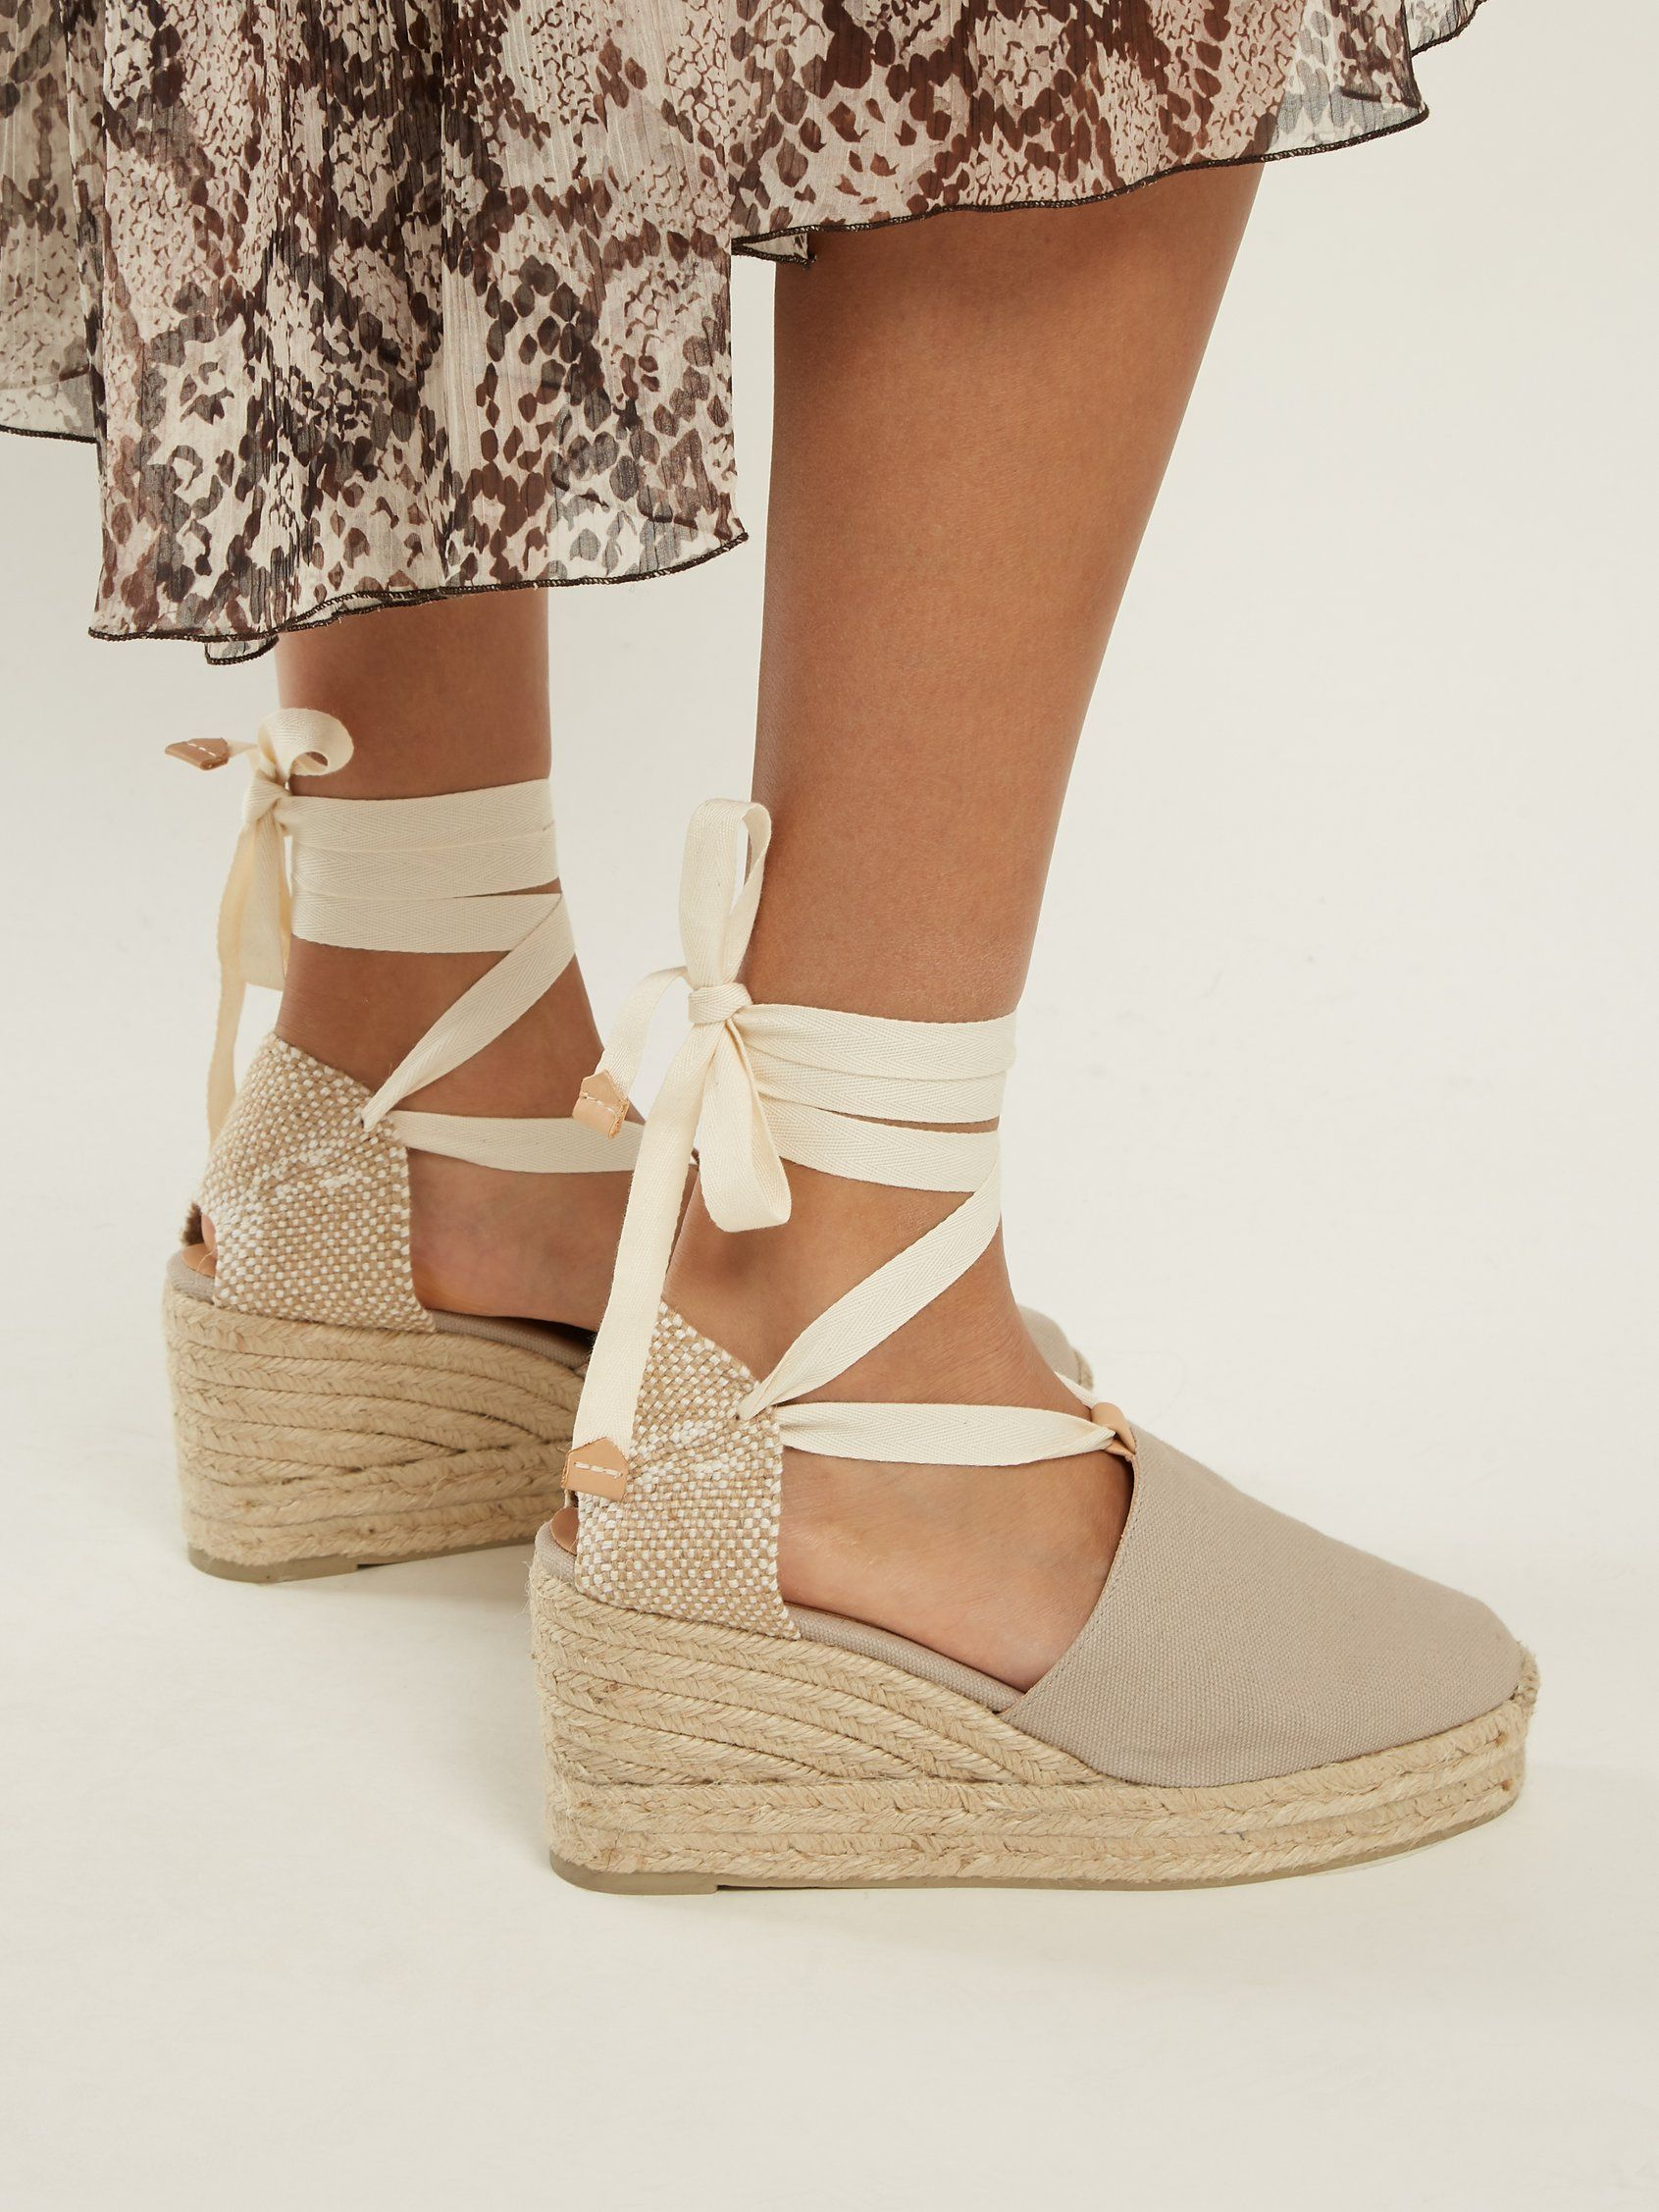 67fcc00ad9c Click here to buy Castañer Campesina canvas wedge espadrilles at ...